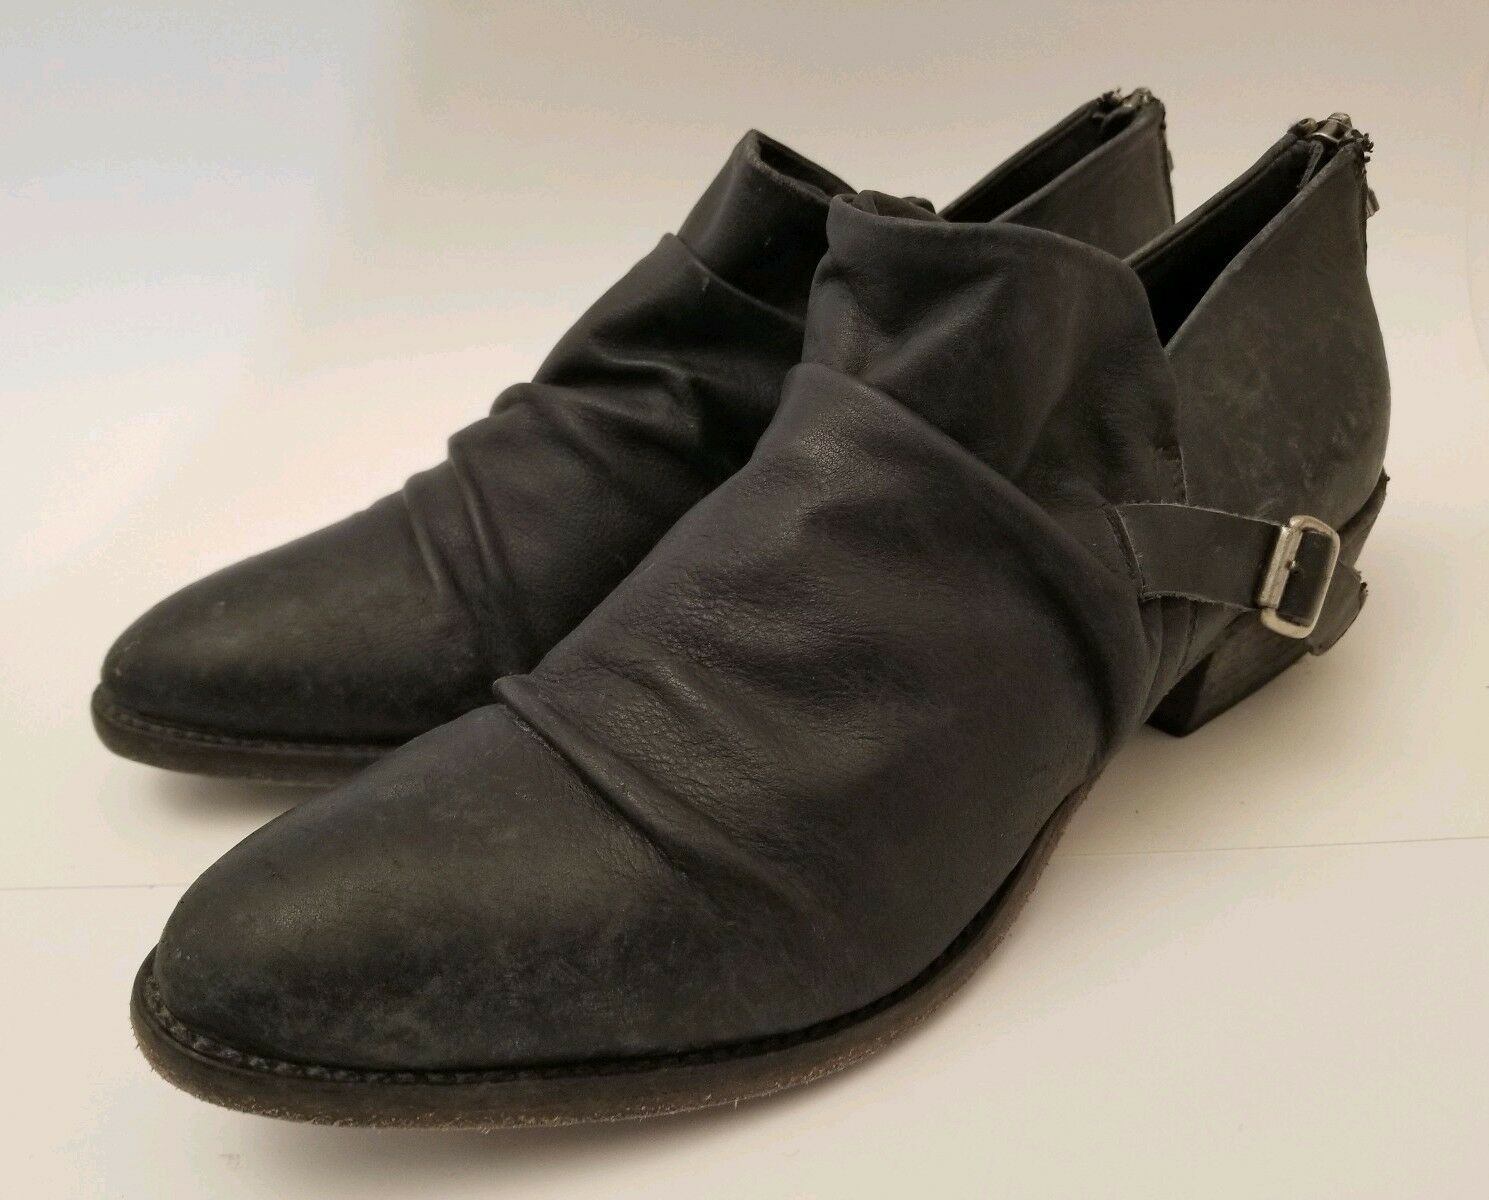 Anthropologie Matisse Wills Distressed Black Leather Ankle Booties Size 9.5 New